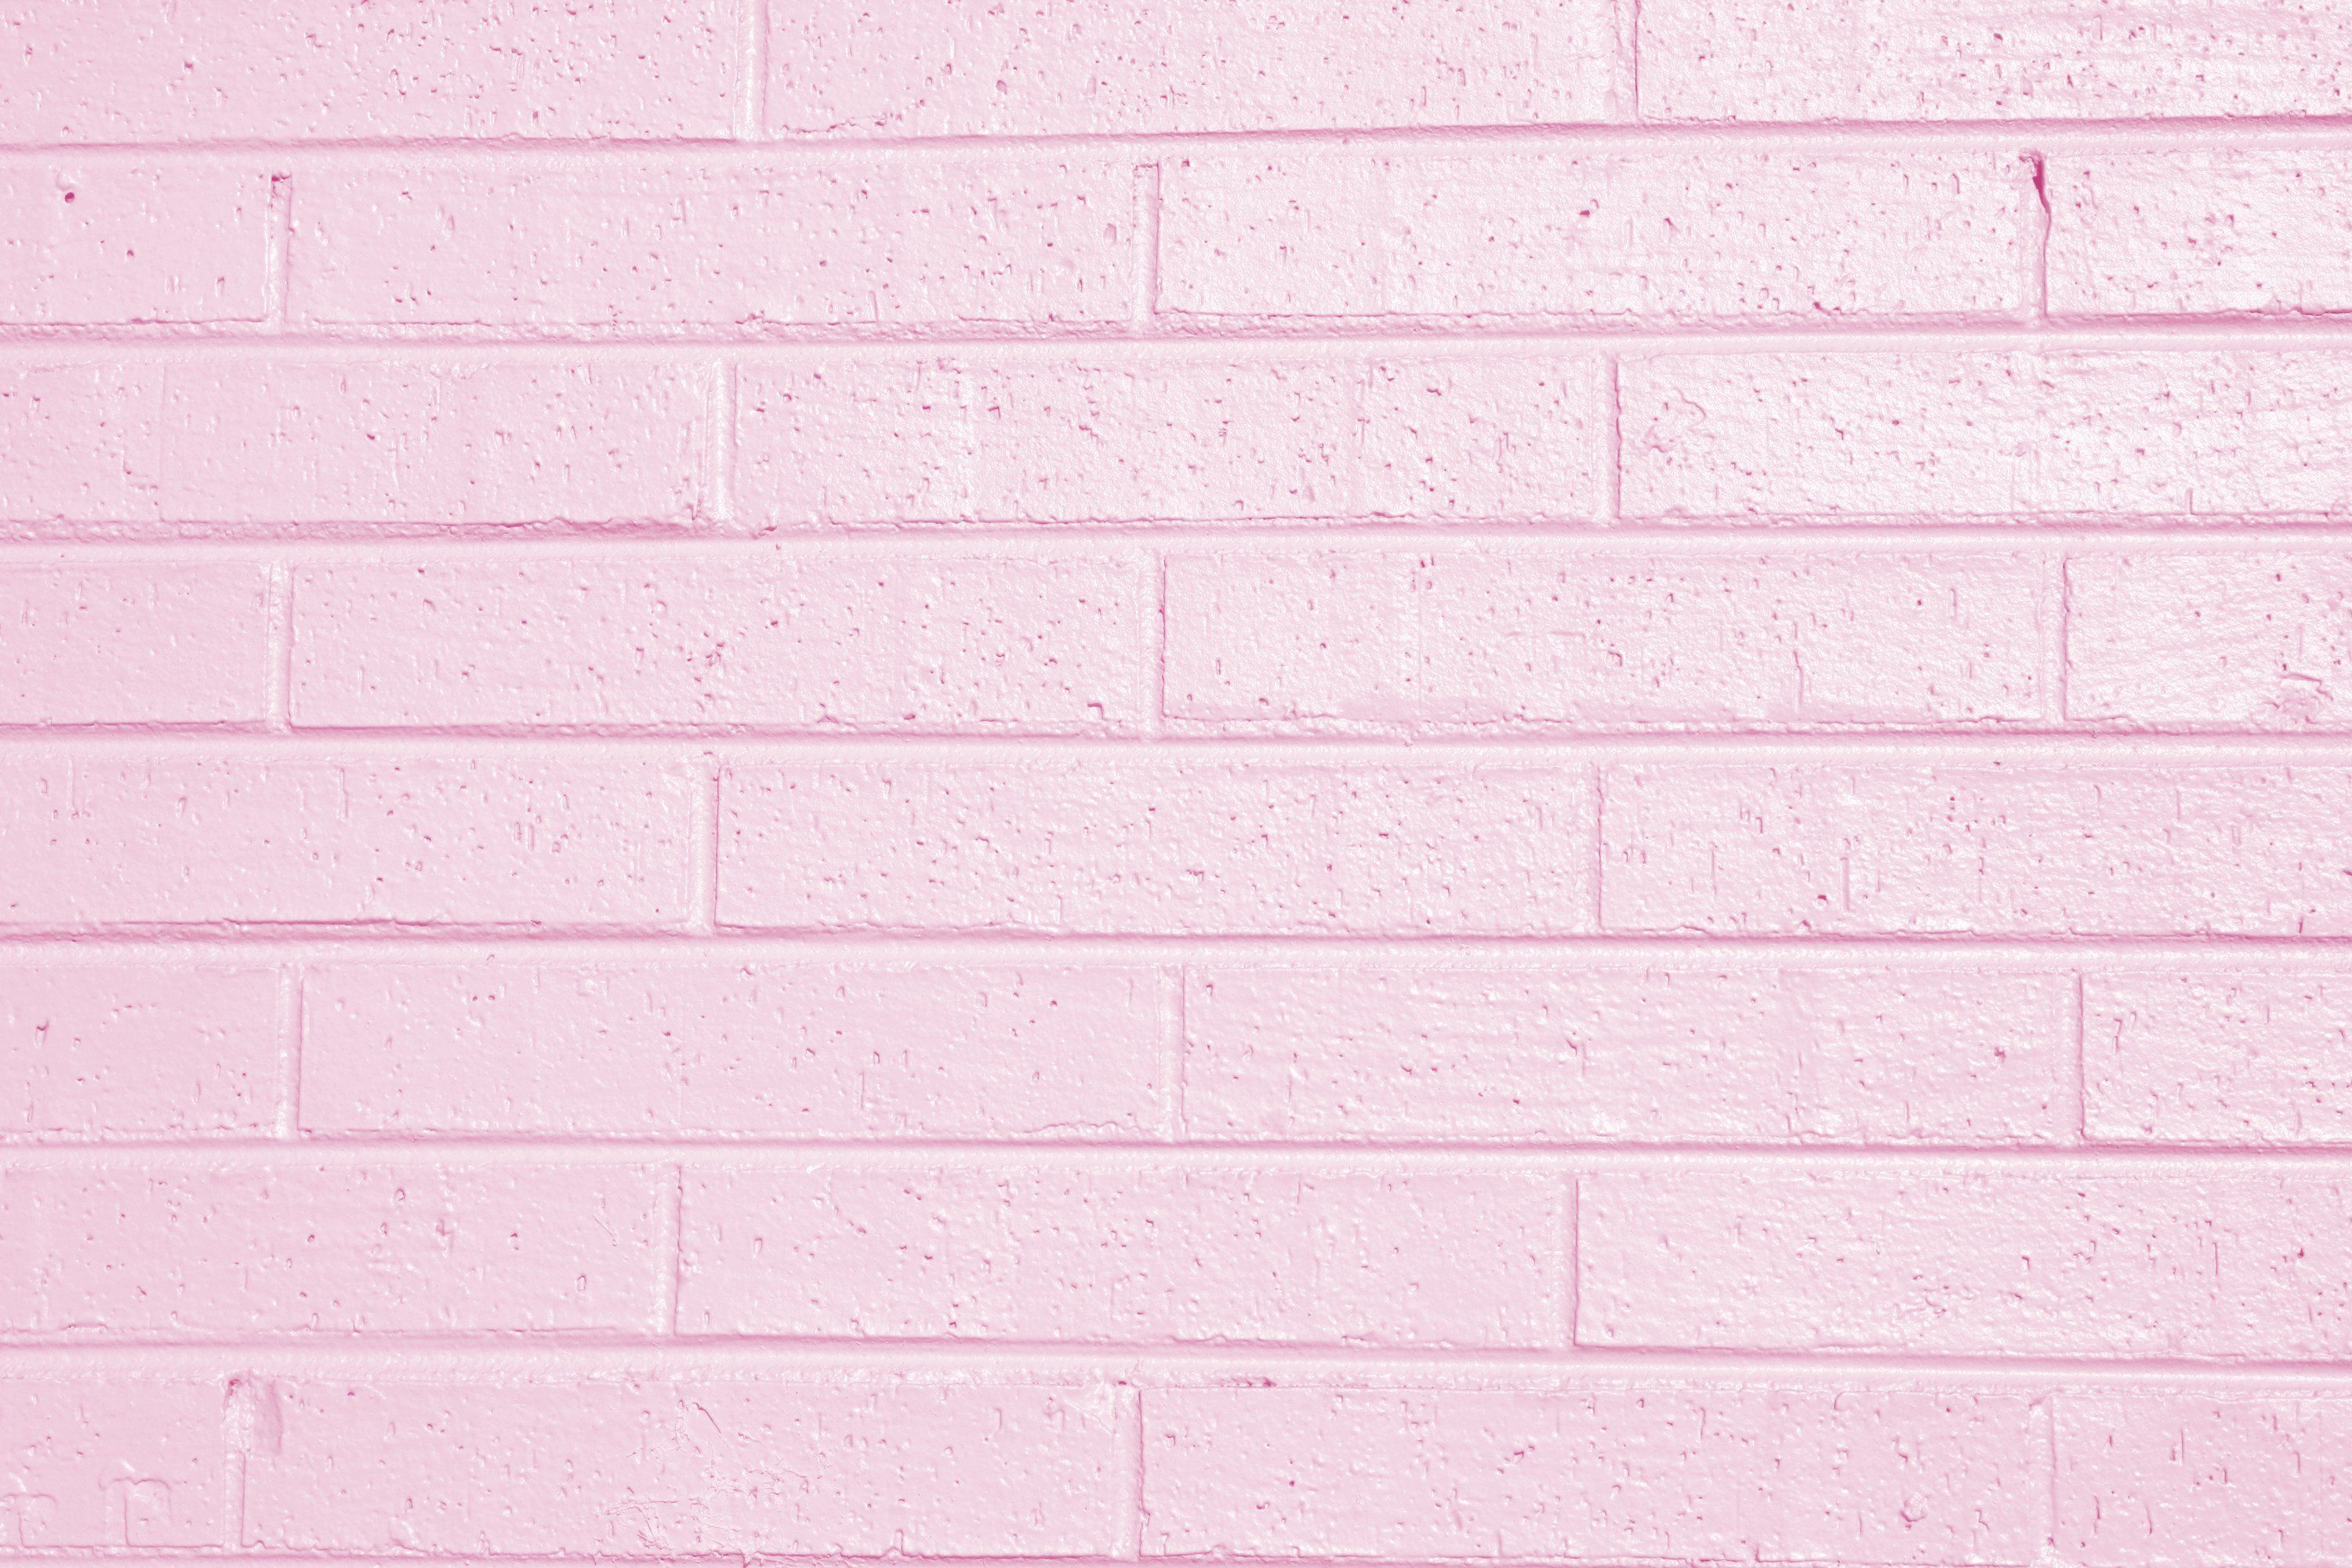 HD Light Pink Backgrounds Pink wallpaper backgrounds